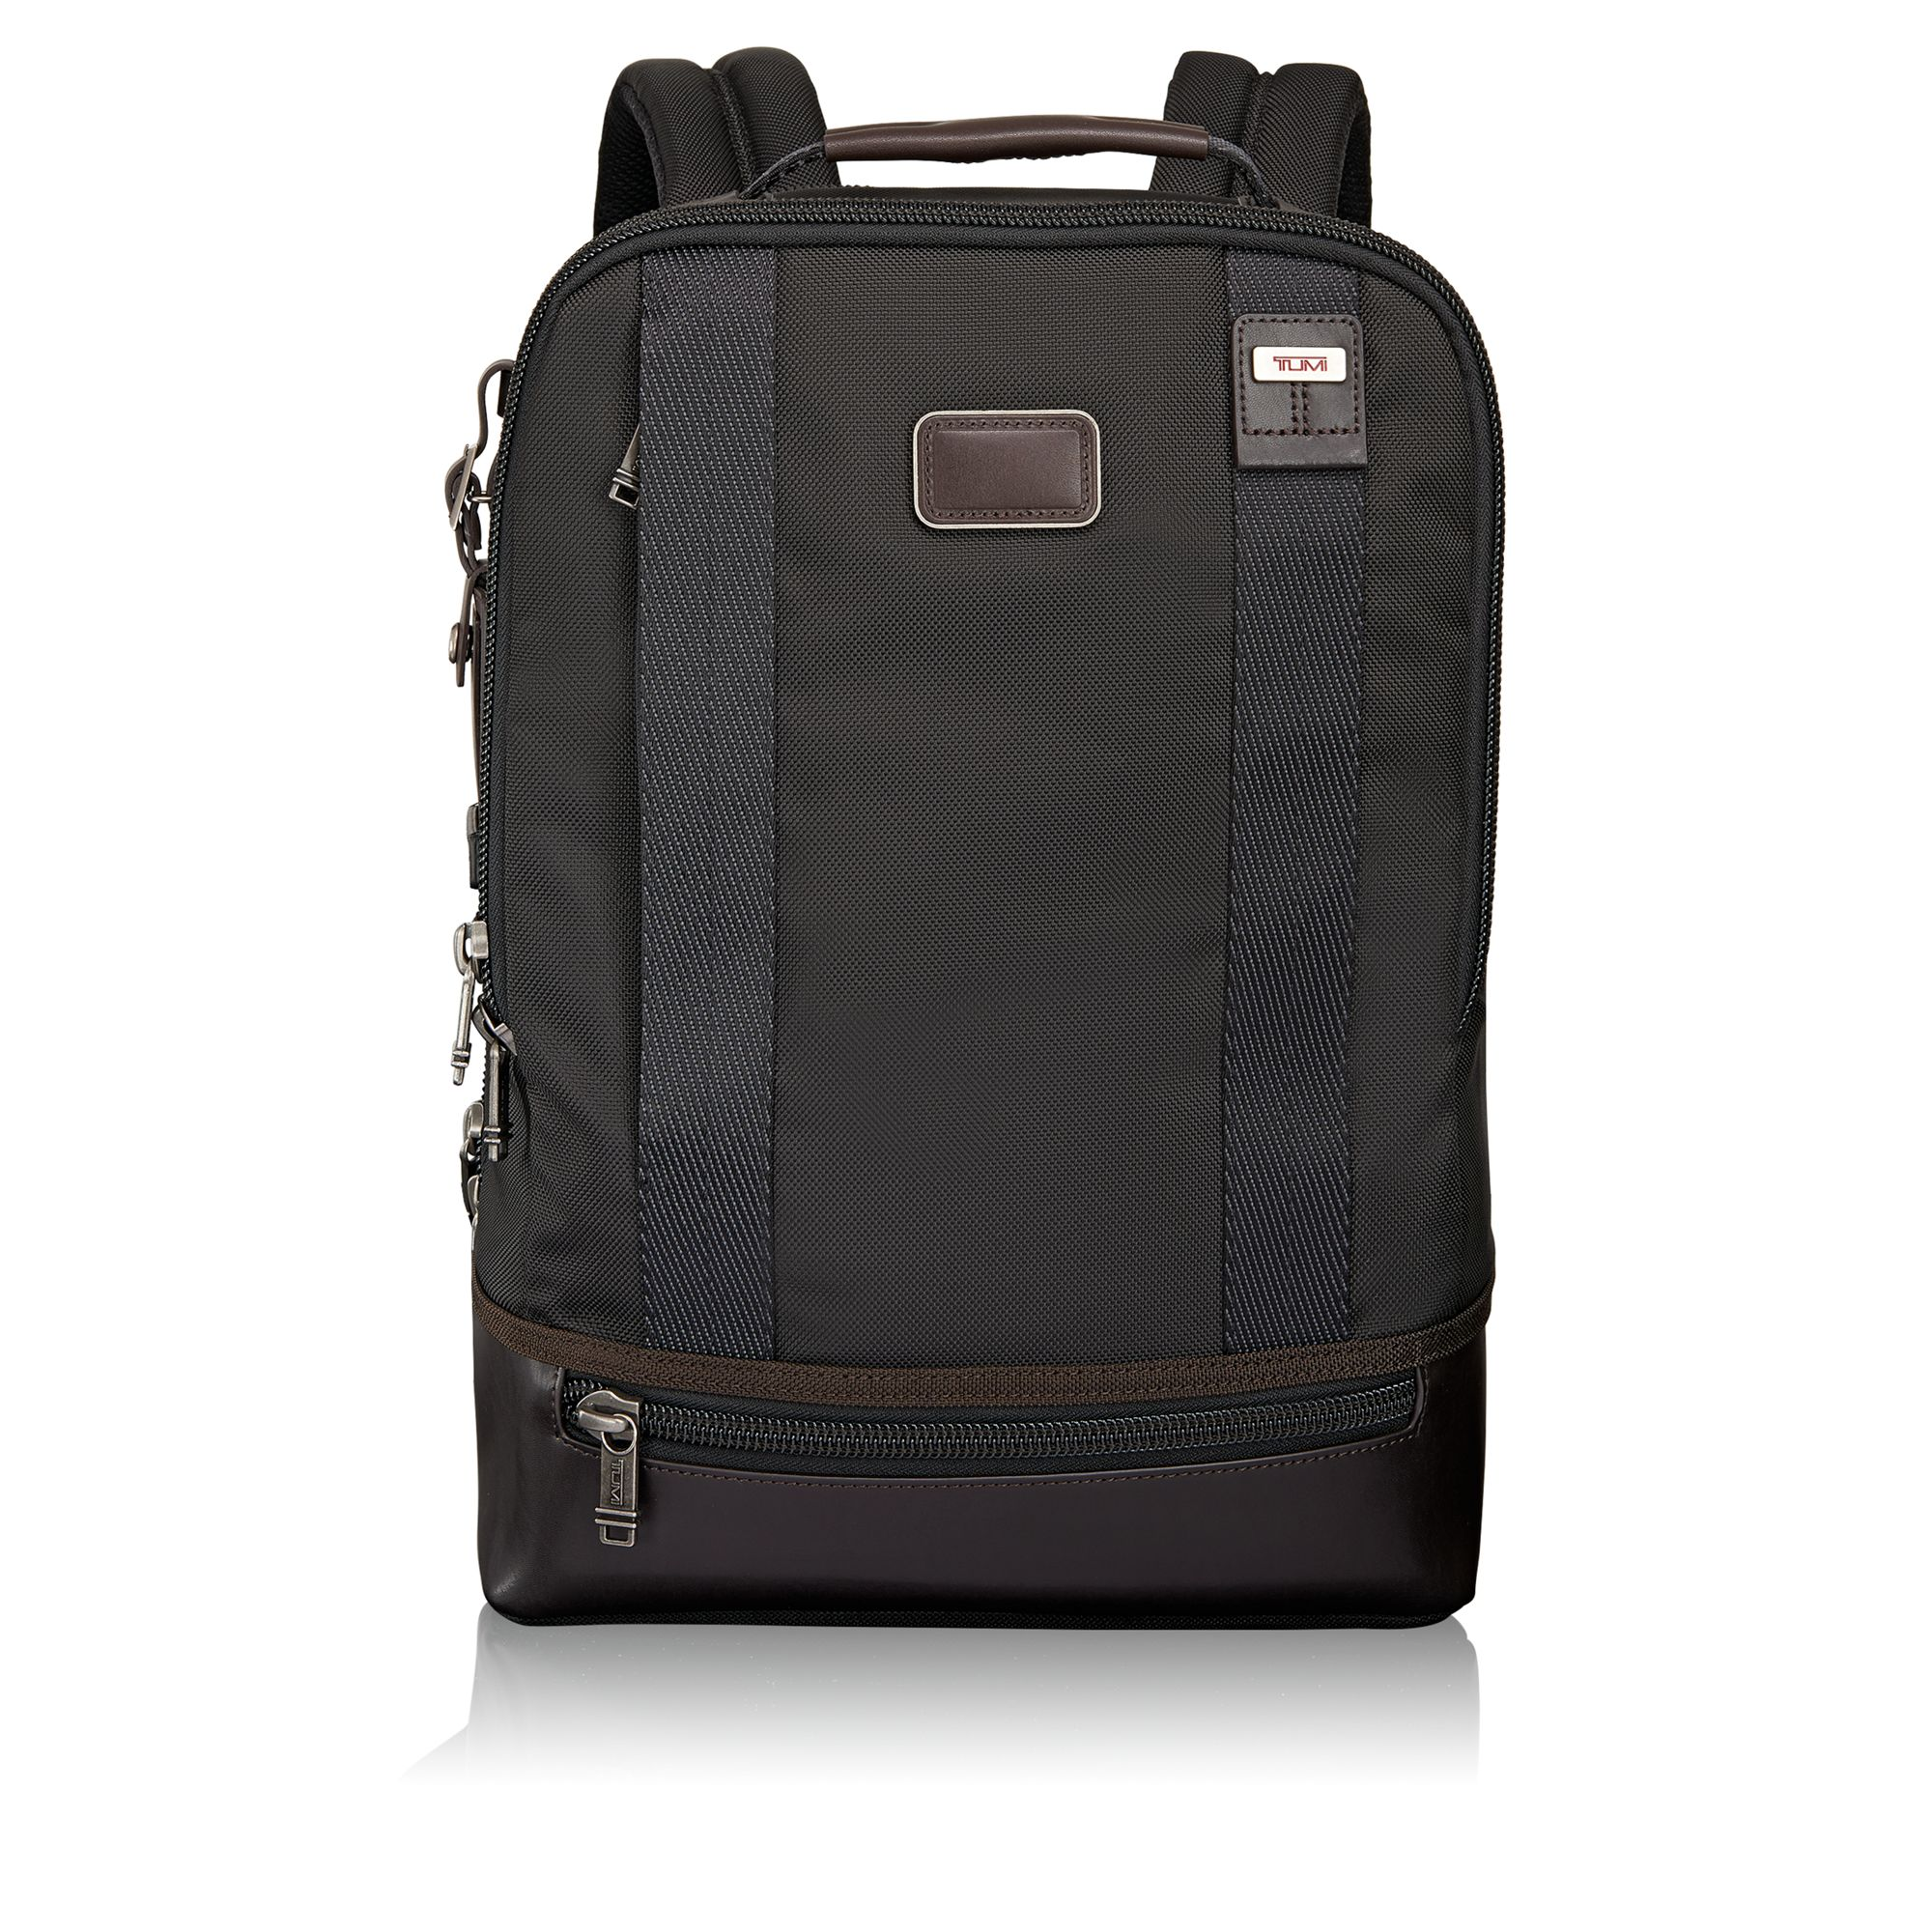 Elegant Tumi Alpha Bravo for Cool Travel Bag Ideas: Tumi Alpha Bravo | Alpha Bravo Tumi | Tumi Alpha Luggage